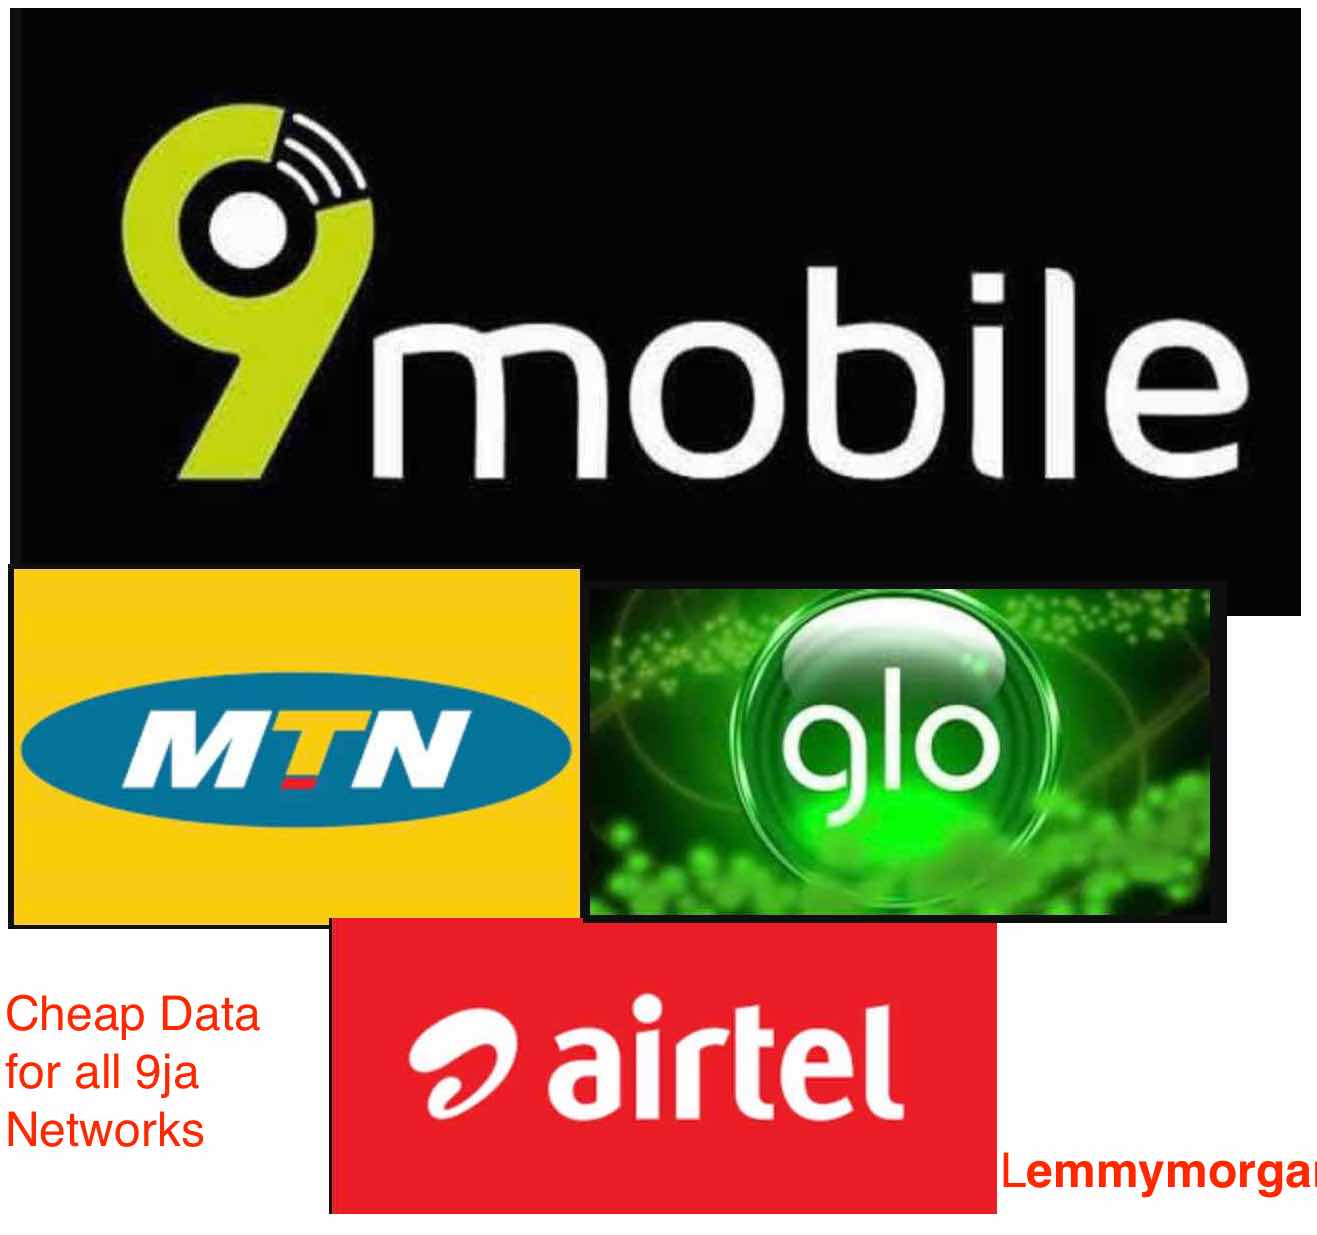 Lemmy Morgan Cheap Data Updates for all Nigerian Internet